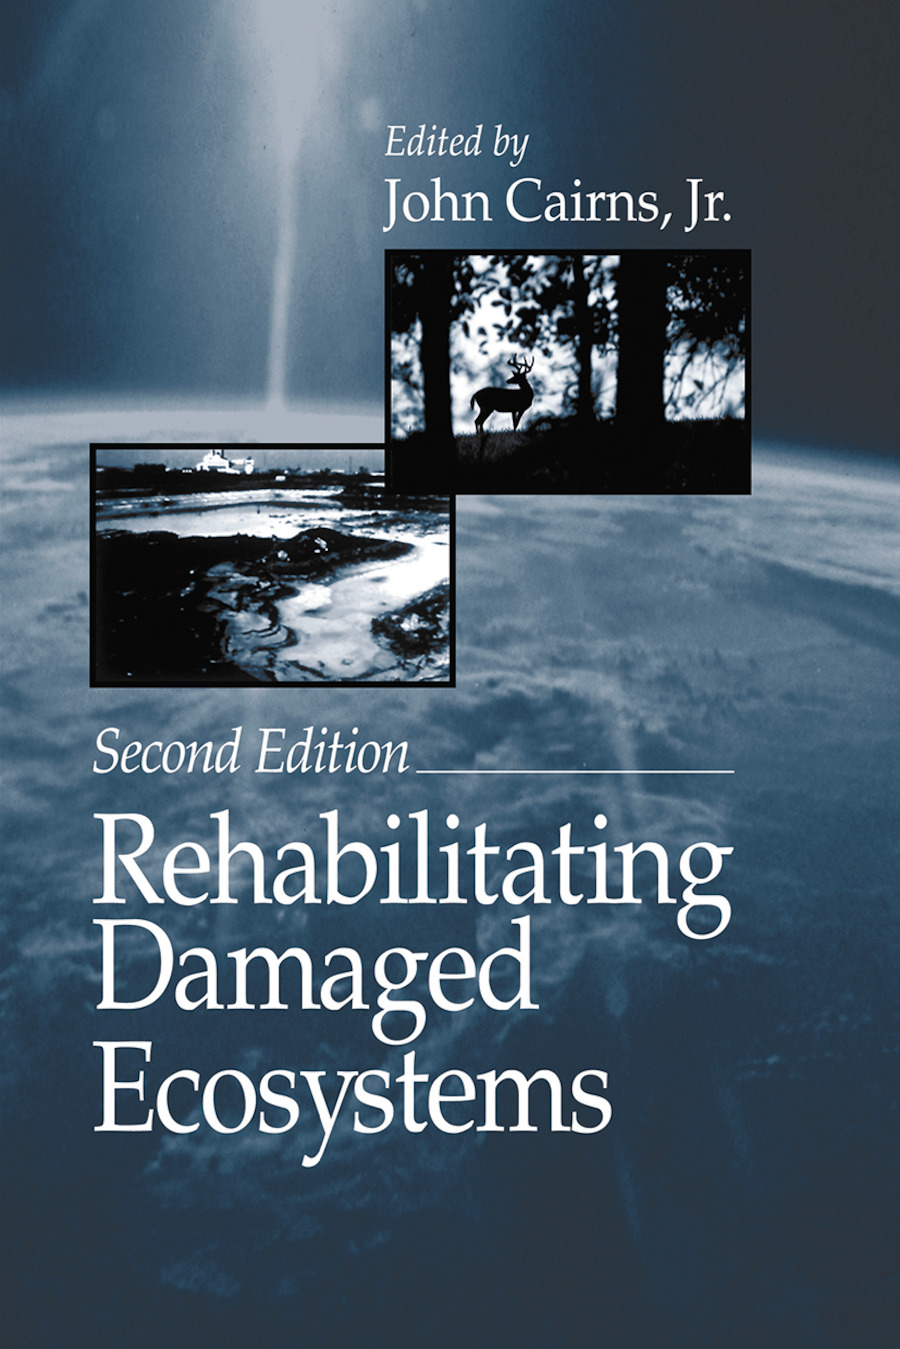 Rehabilitating Damaged Ecosystems